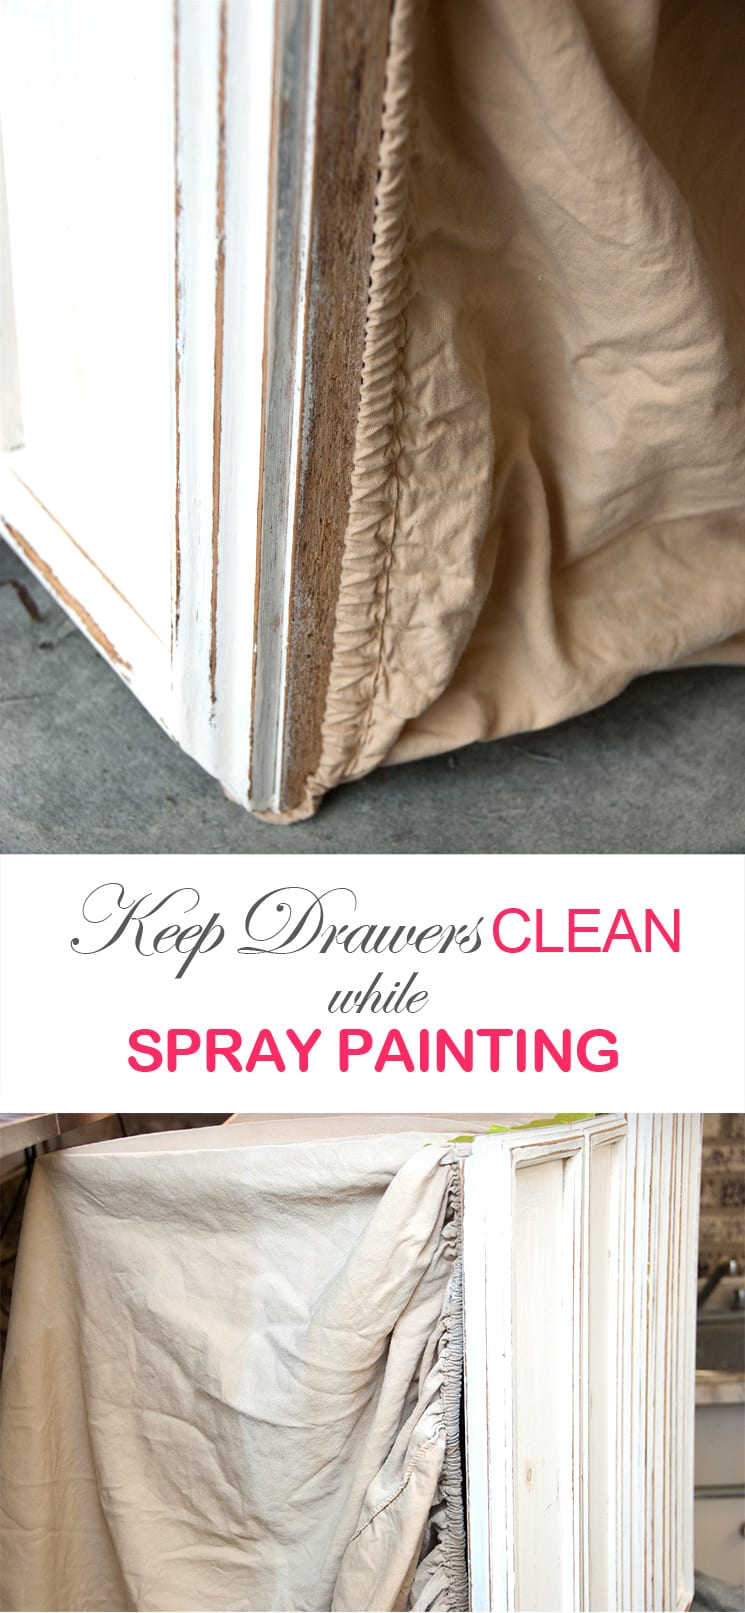 Keep Drawers Clean while Spay Painting